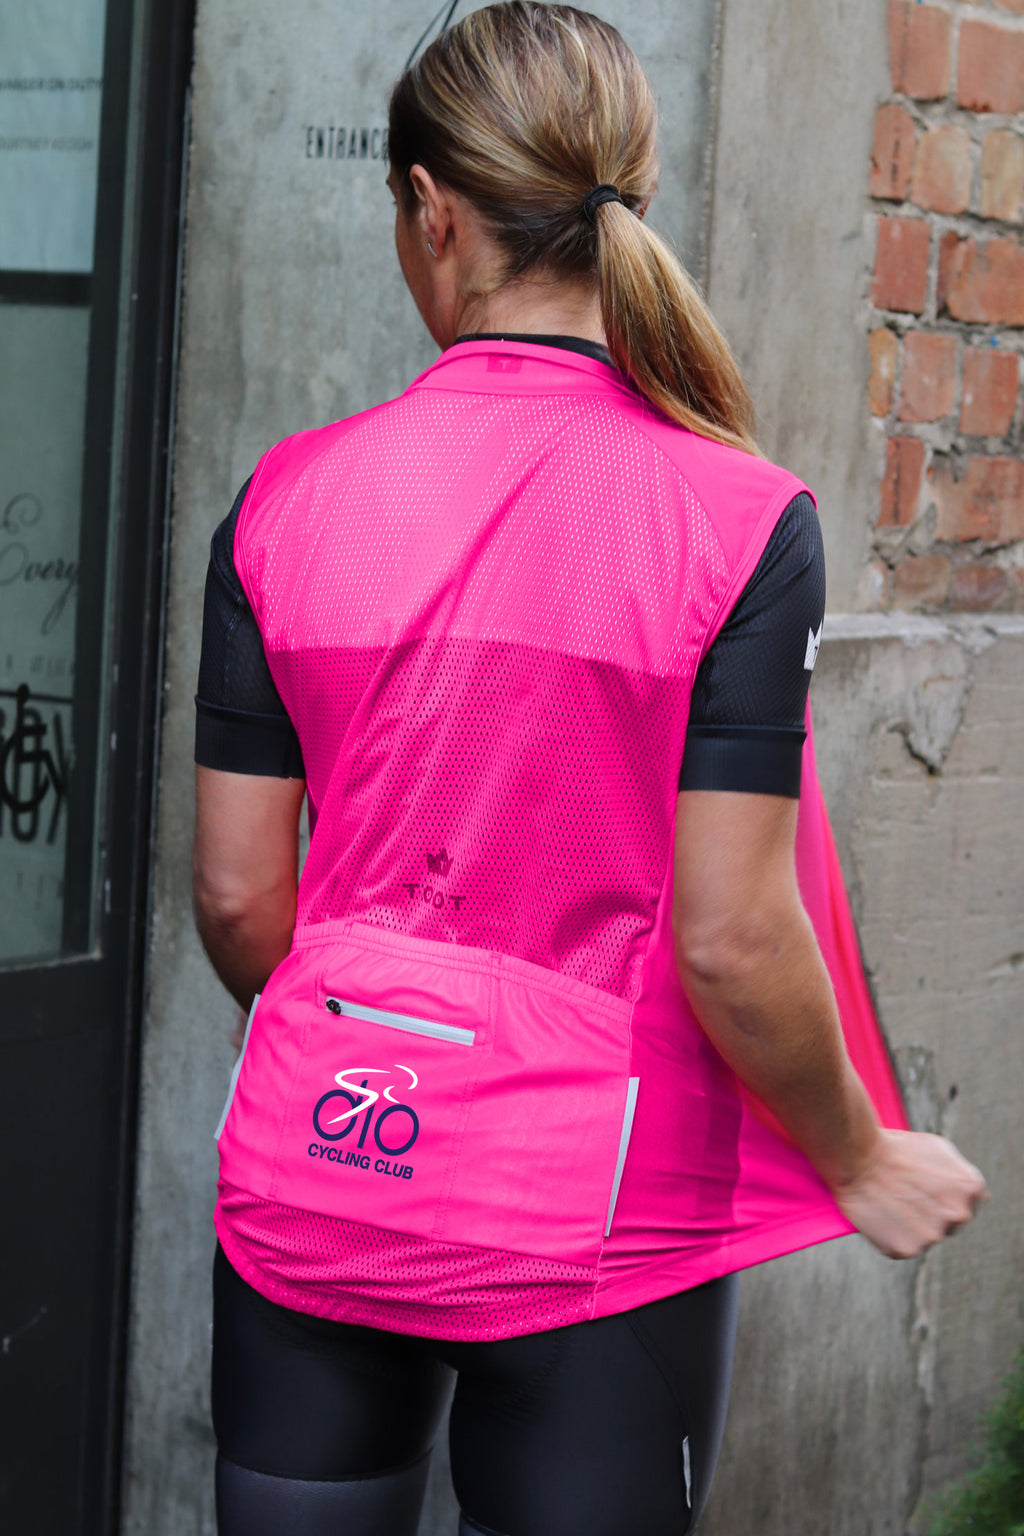 DIO CYCLING CLUB - Fluro Pink Gilet/Windvest